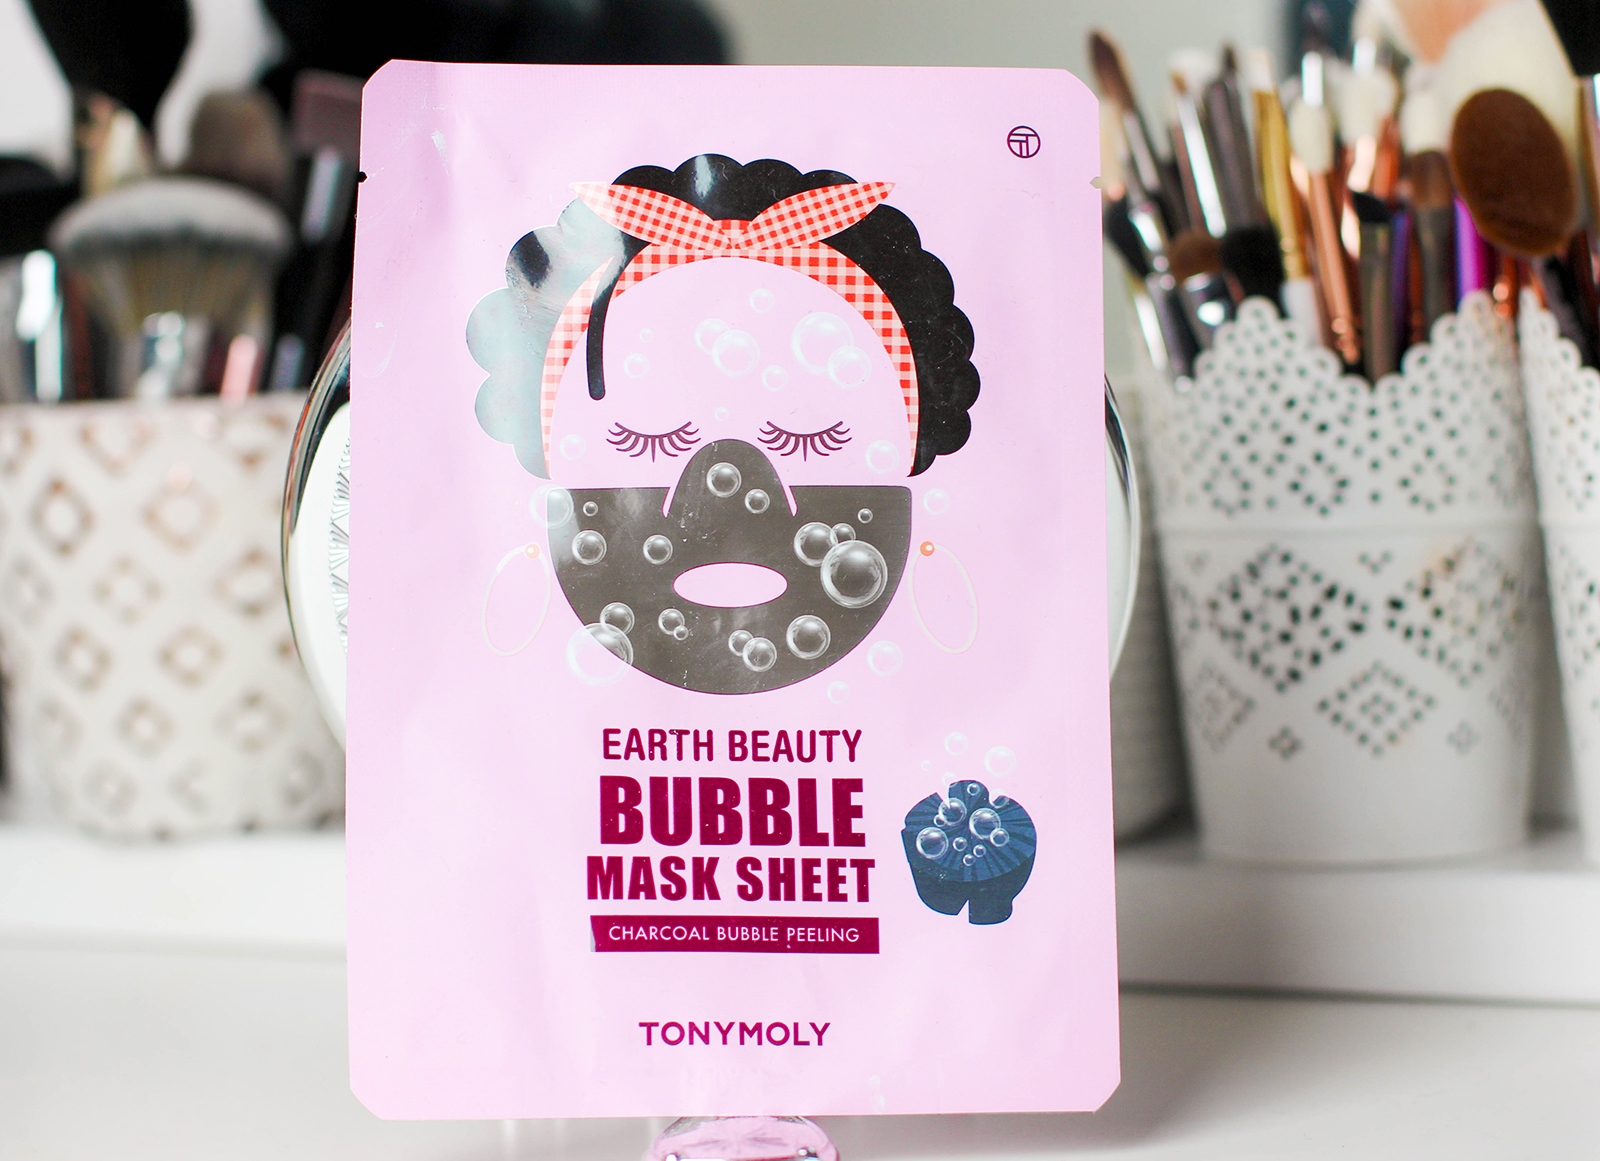 Masque-Moussant-bubblemask-1